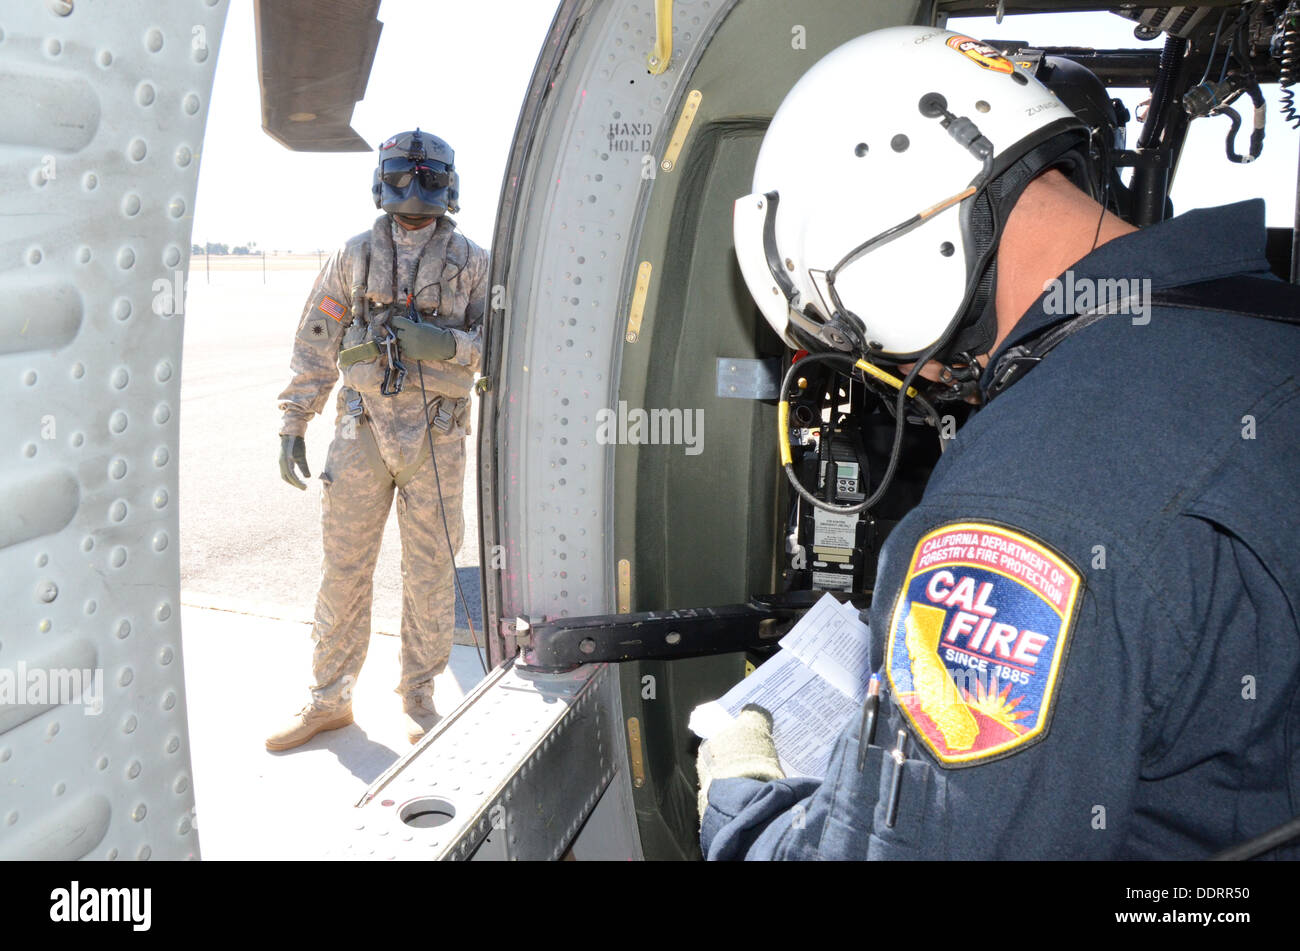 Cal Fire manager, Fire Capt. John Zungea, right, who spots U.S Forest Service fire fighters on the ground and Signals Spc. Michael Beatty, a UH-60 Black Hawk crew chief from the 1-140th Aviation Battalion (Air Assault), based out of Los Alamitos, prepare - Stock Image